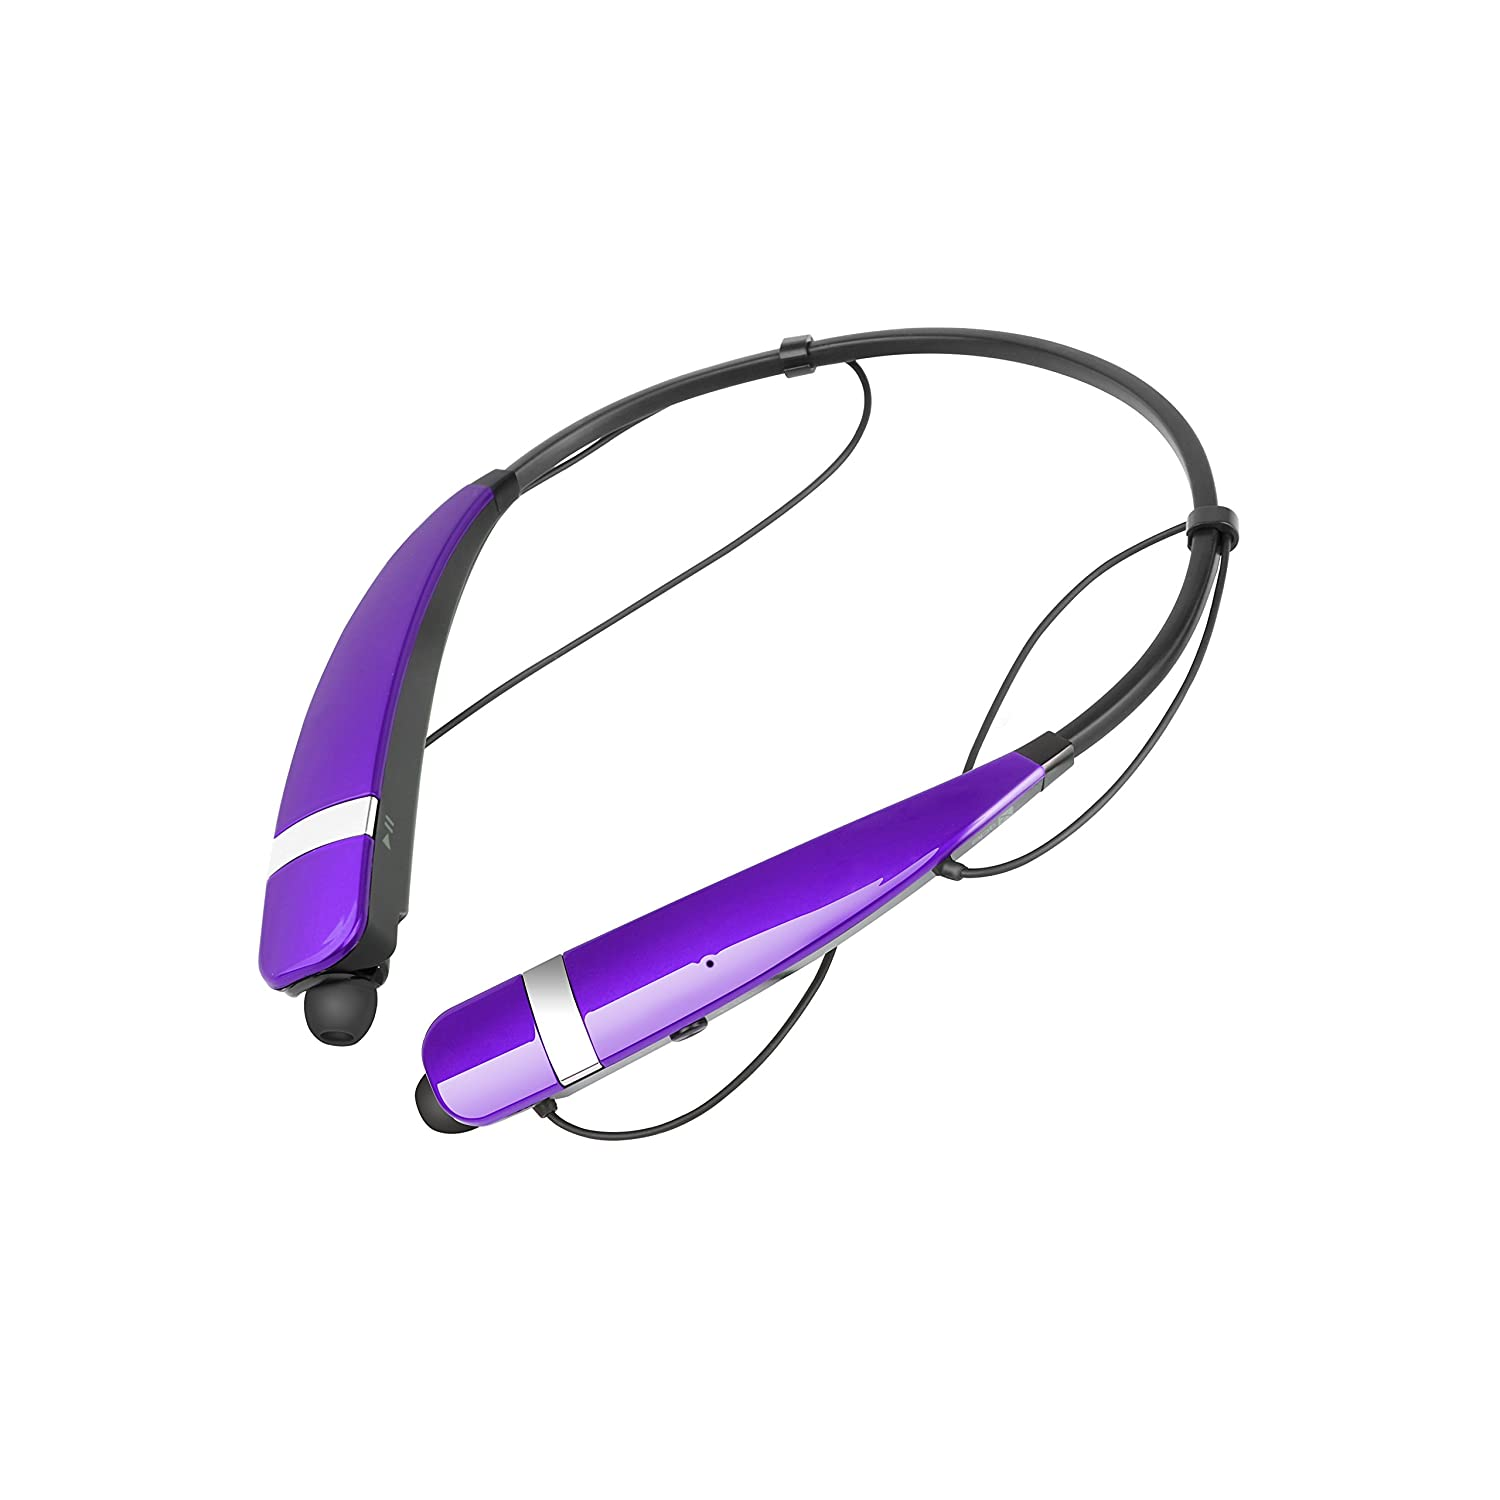 Auriculares lg tone pro II